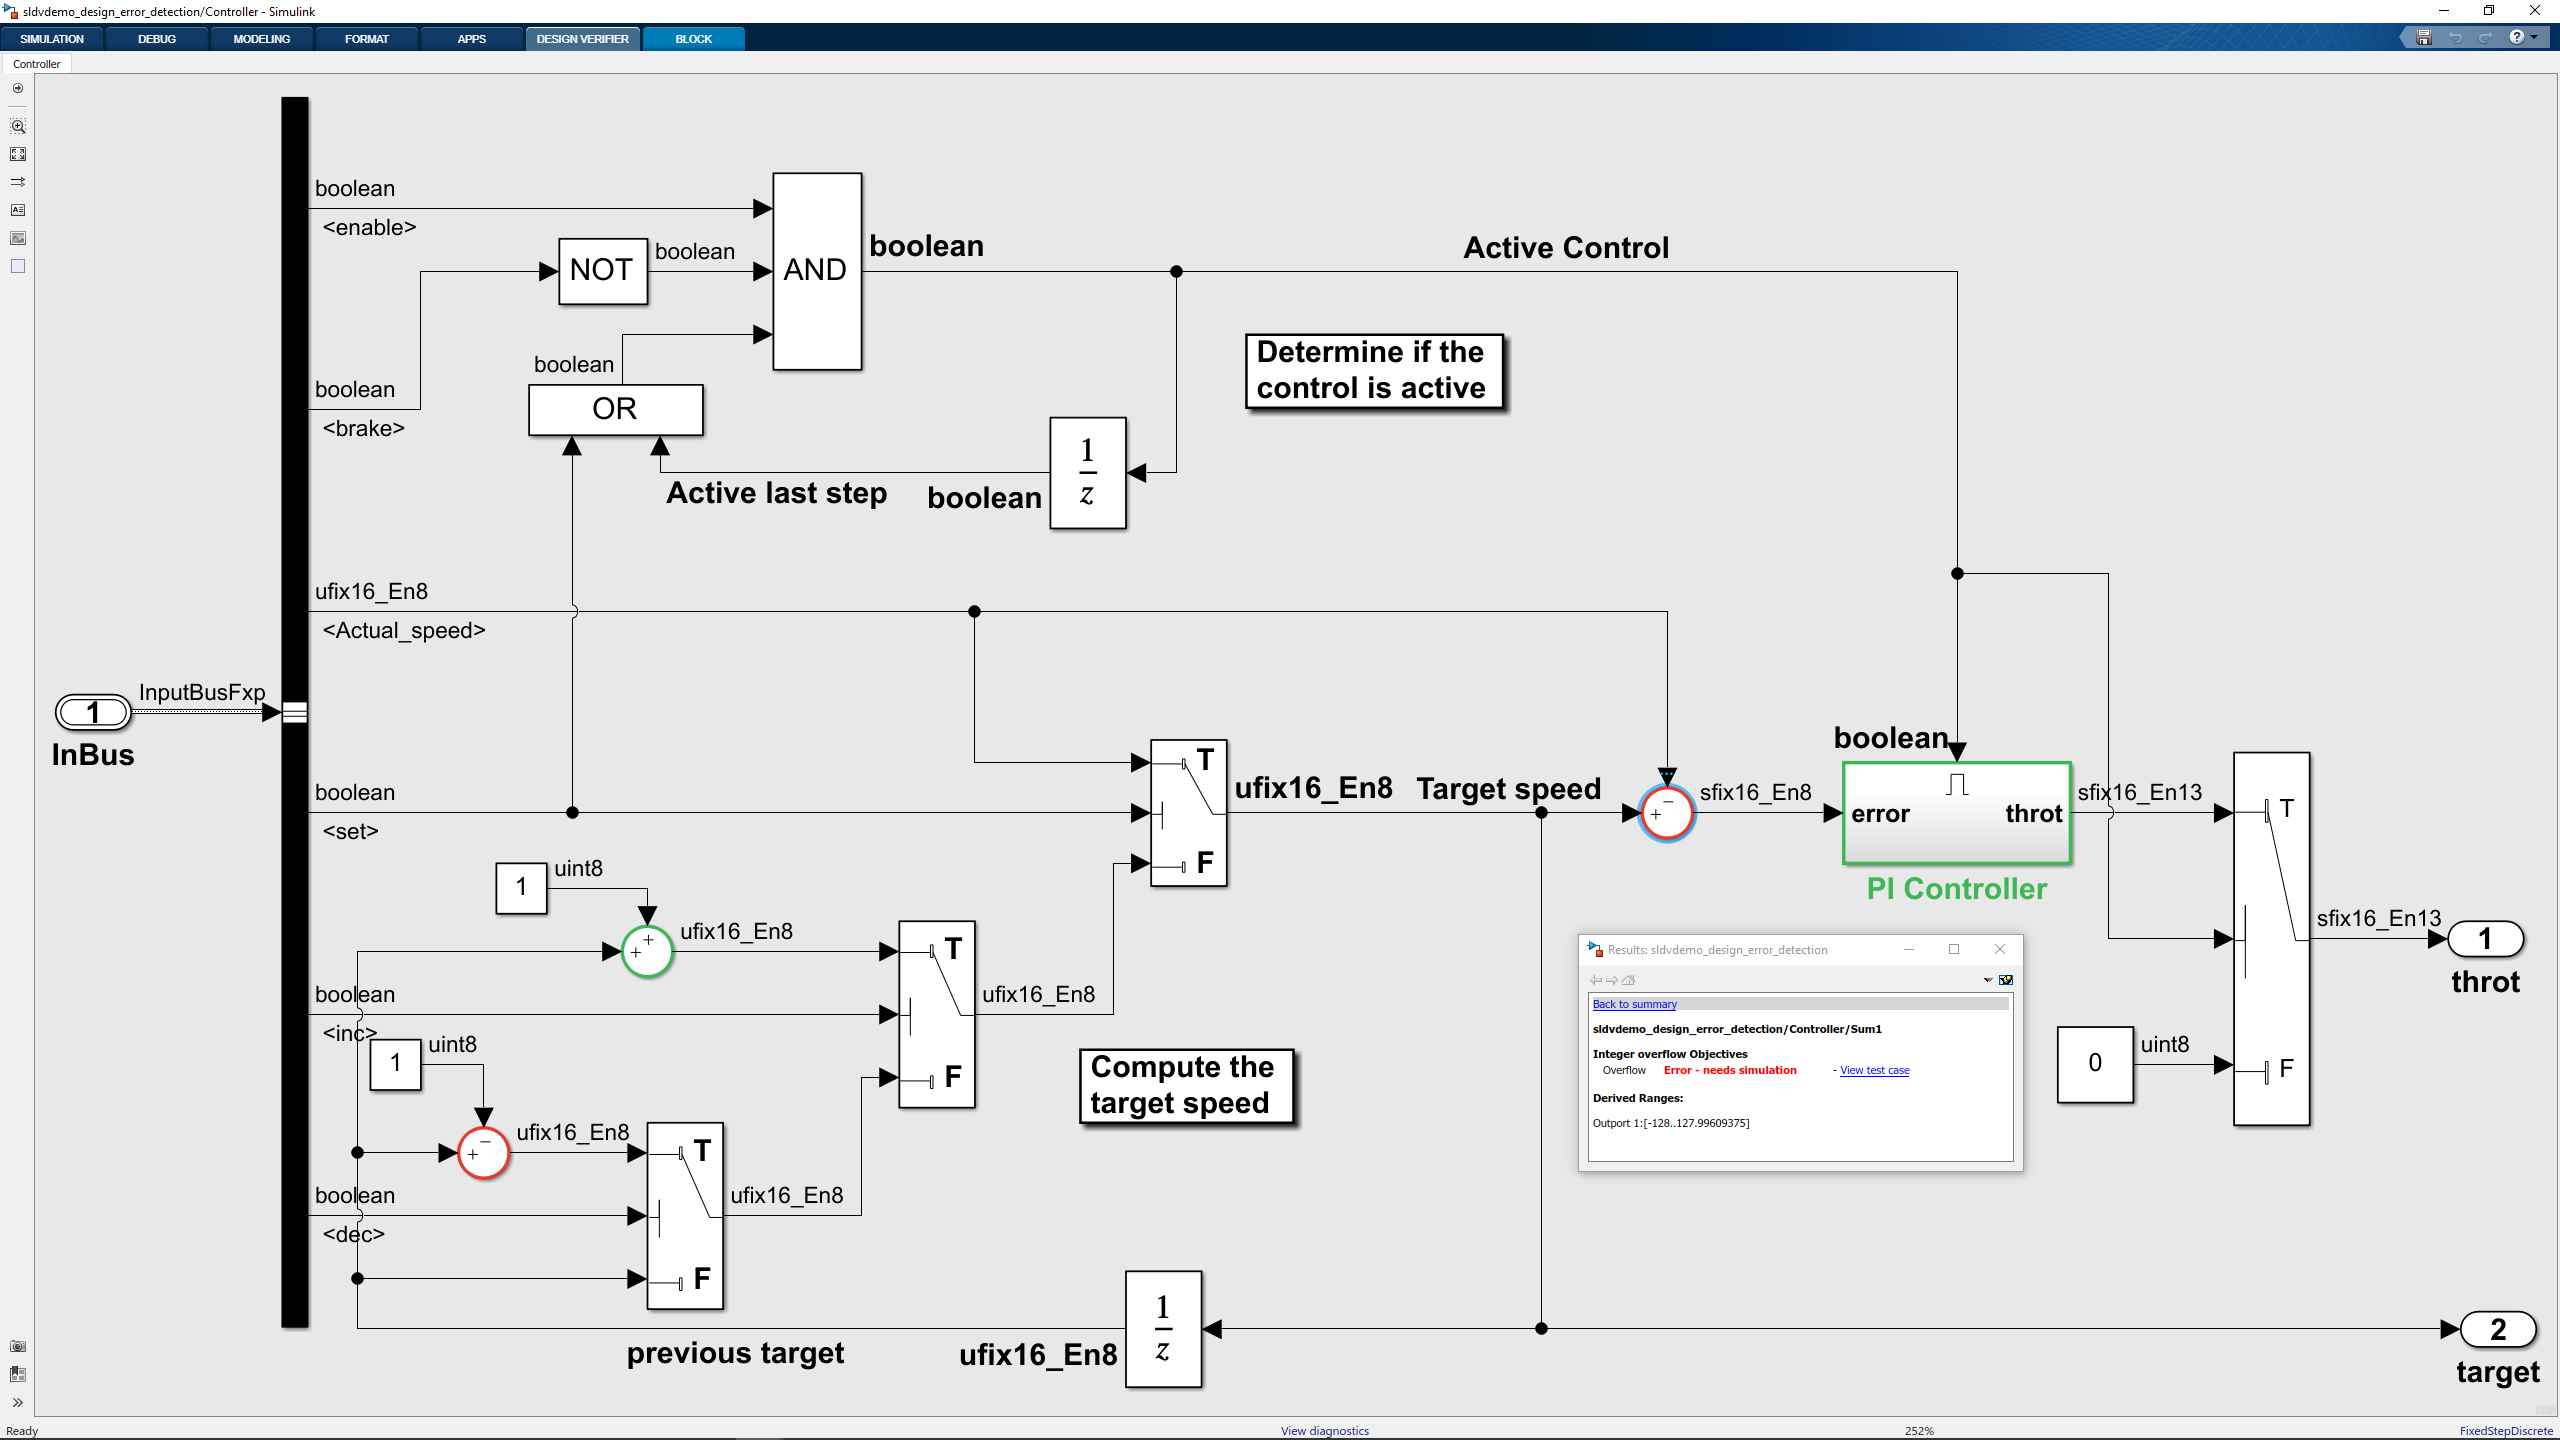 Getting Started With Simulink Design Verifier